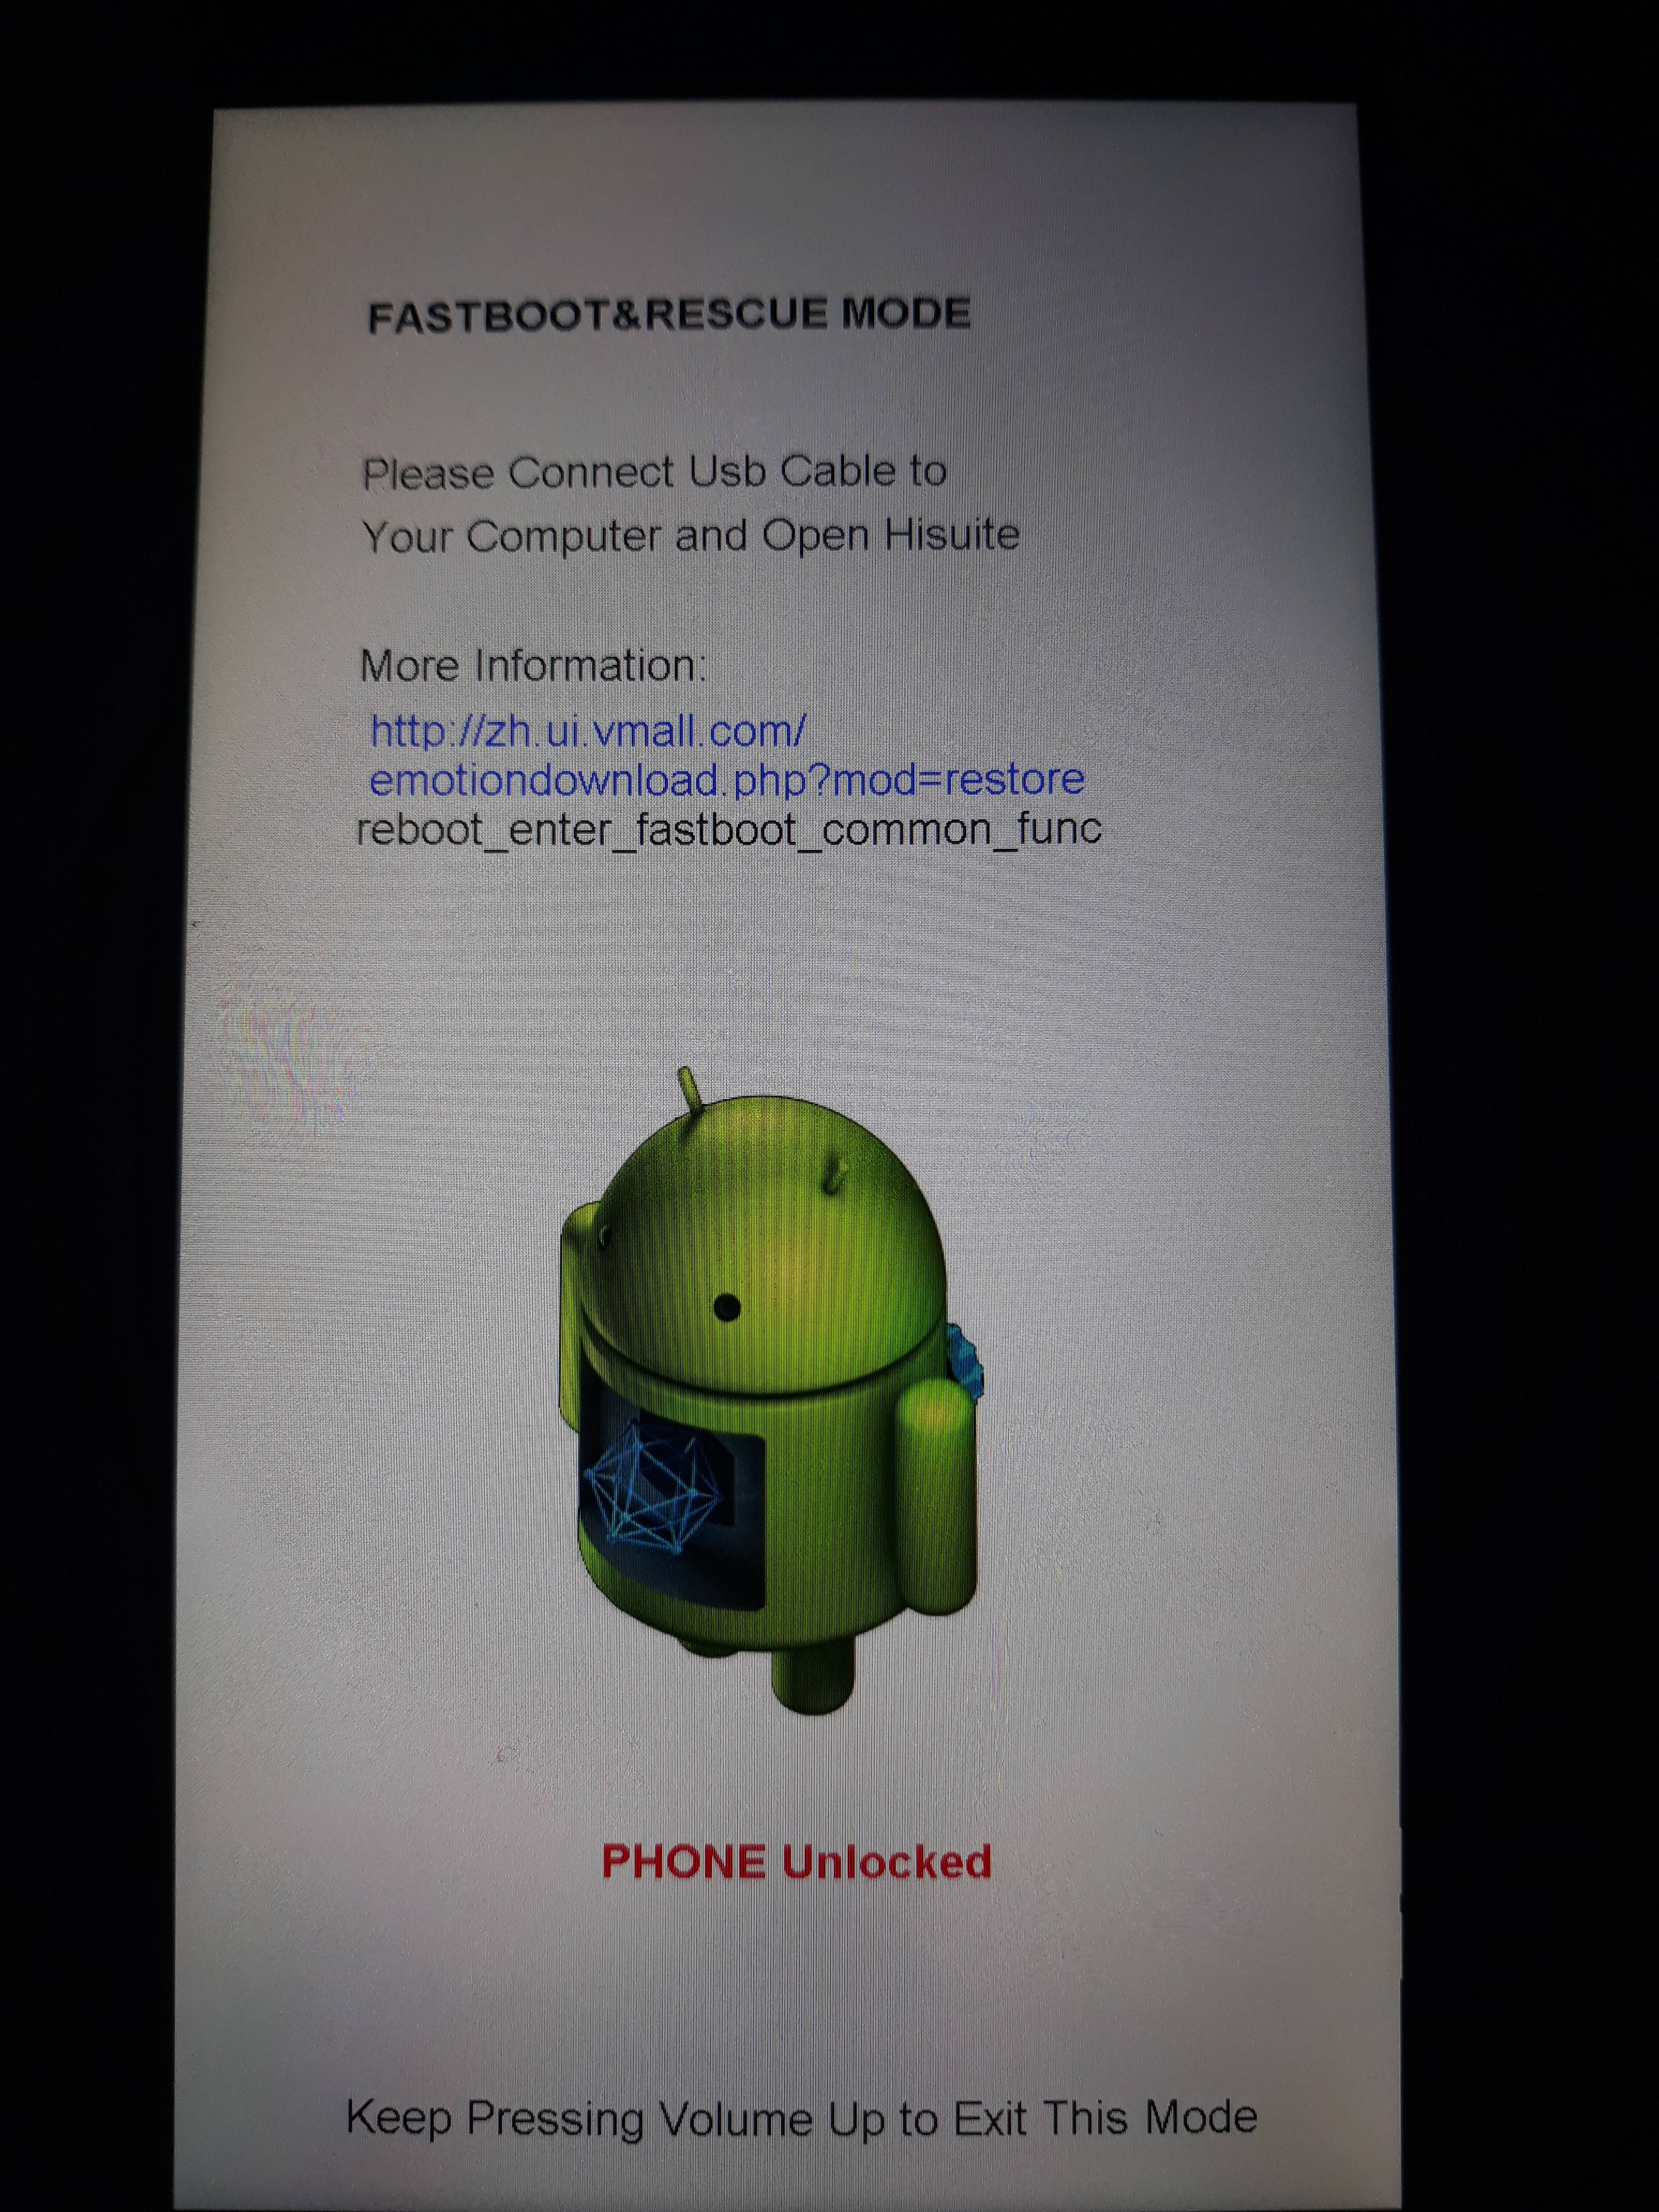 Unable to flash images through Fastboot/Bootloader - Phones